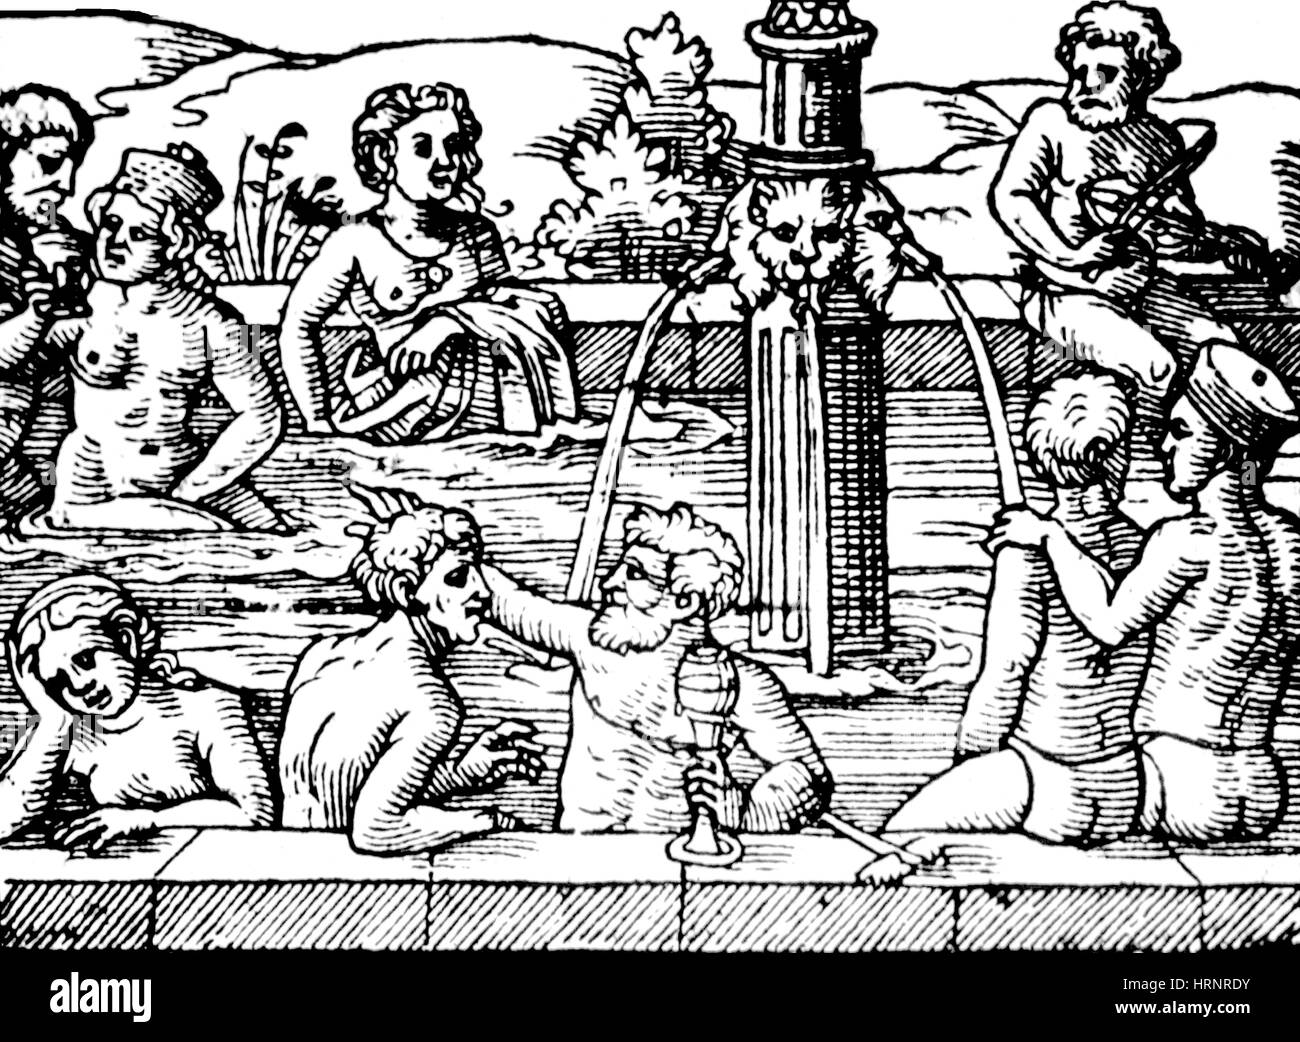 Balneology, Open-Air Bath, 1571 - Stock Image